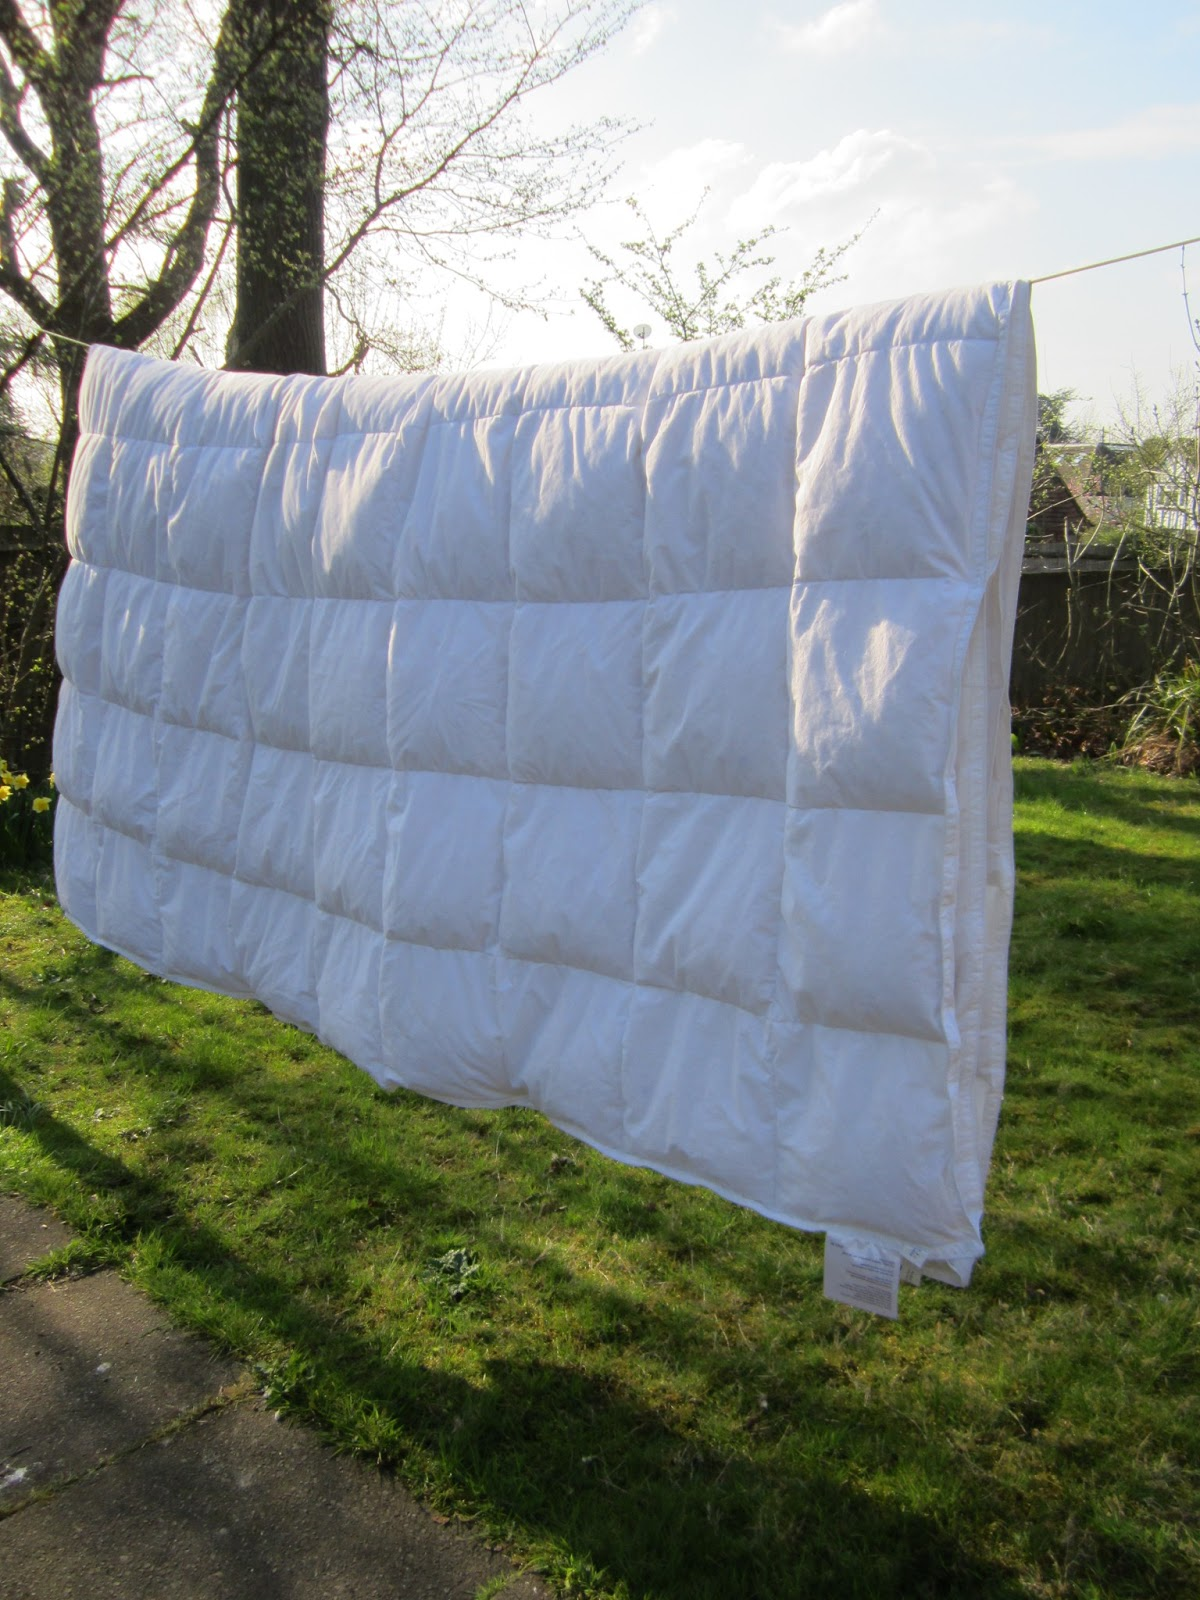 duvet being aired out outside